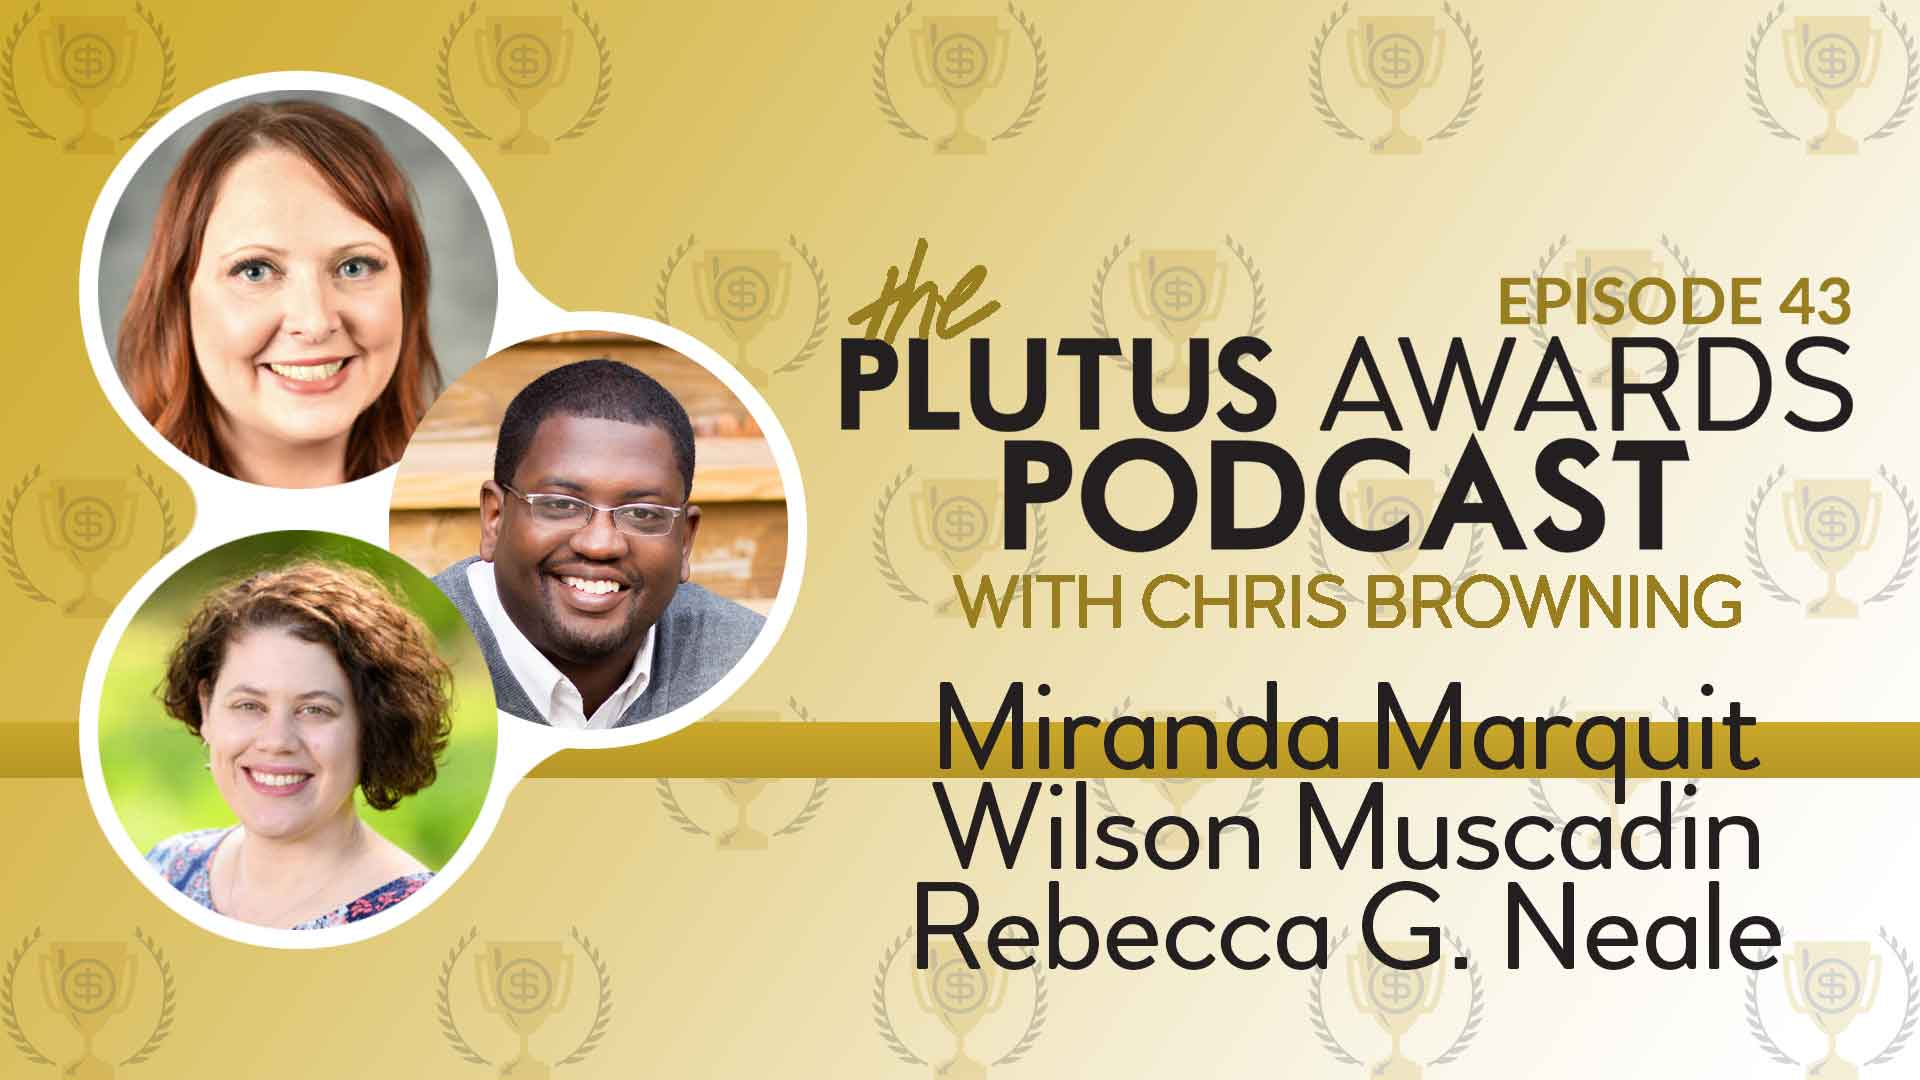 Plutus Awards Podcast Childcare and Education Crisis Featured Image